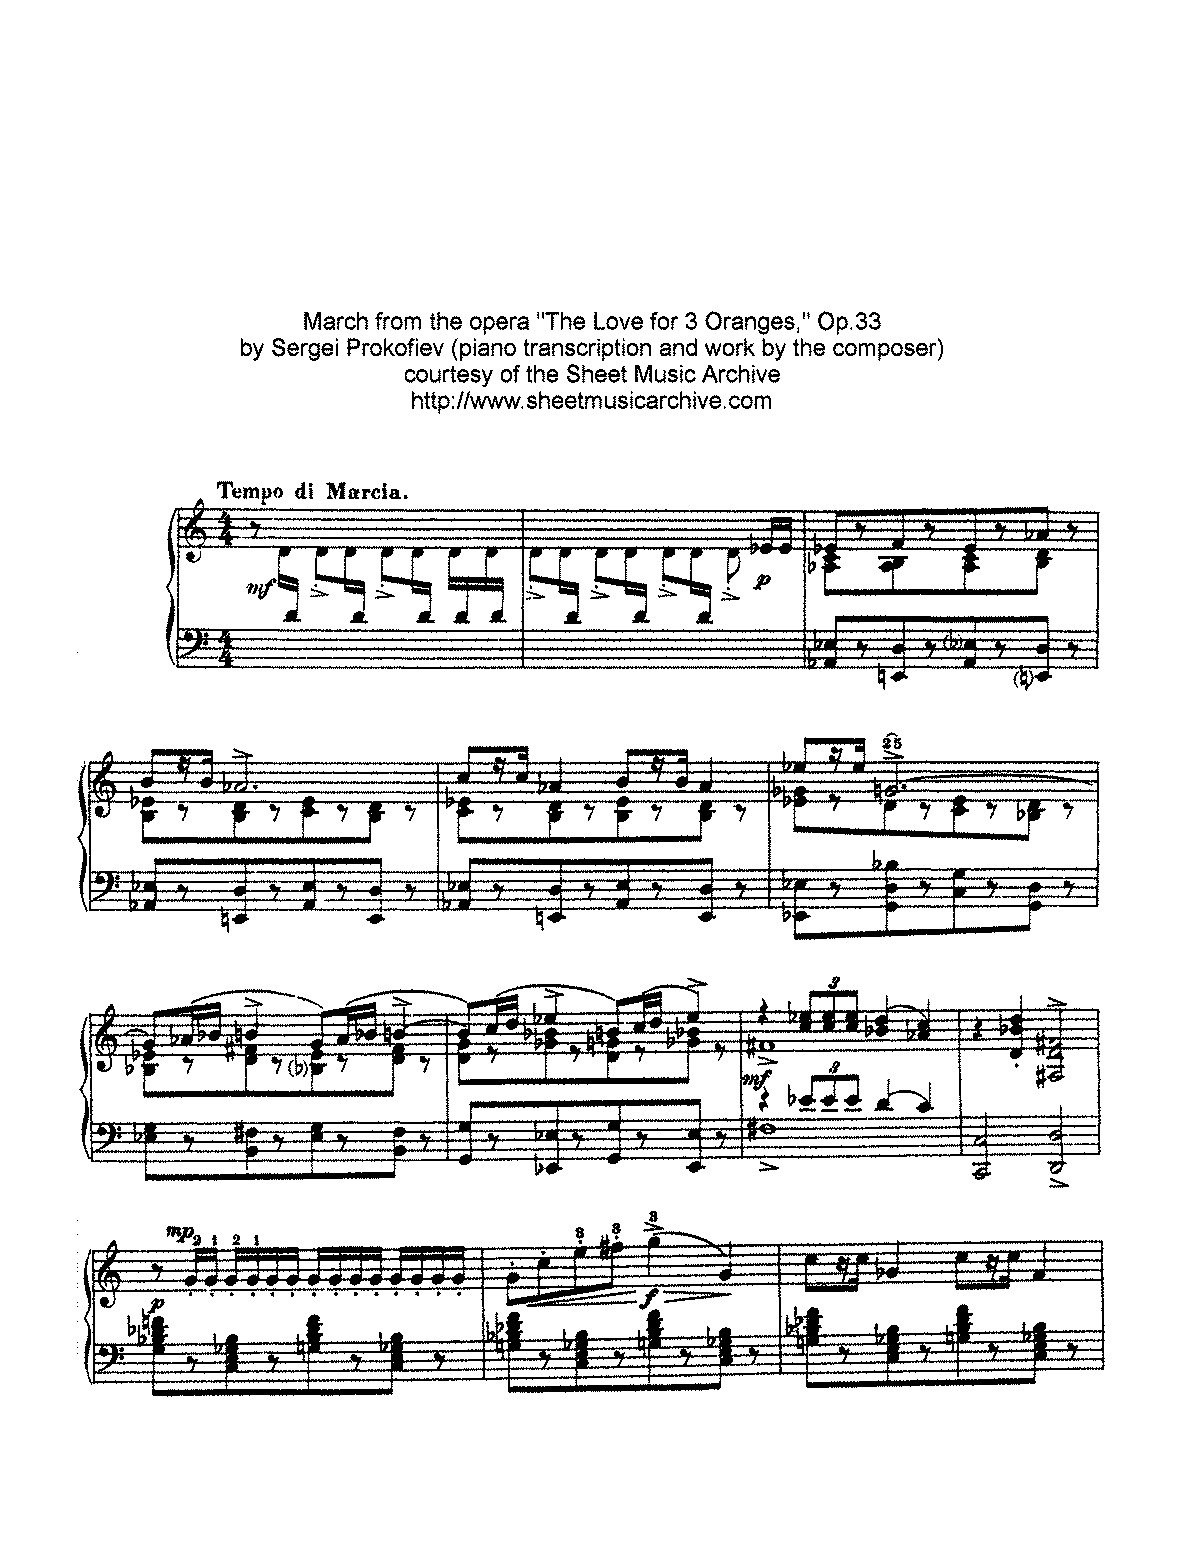 Prokofiev - Op.33 - The Love of 3 Oranges - March.pdf